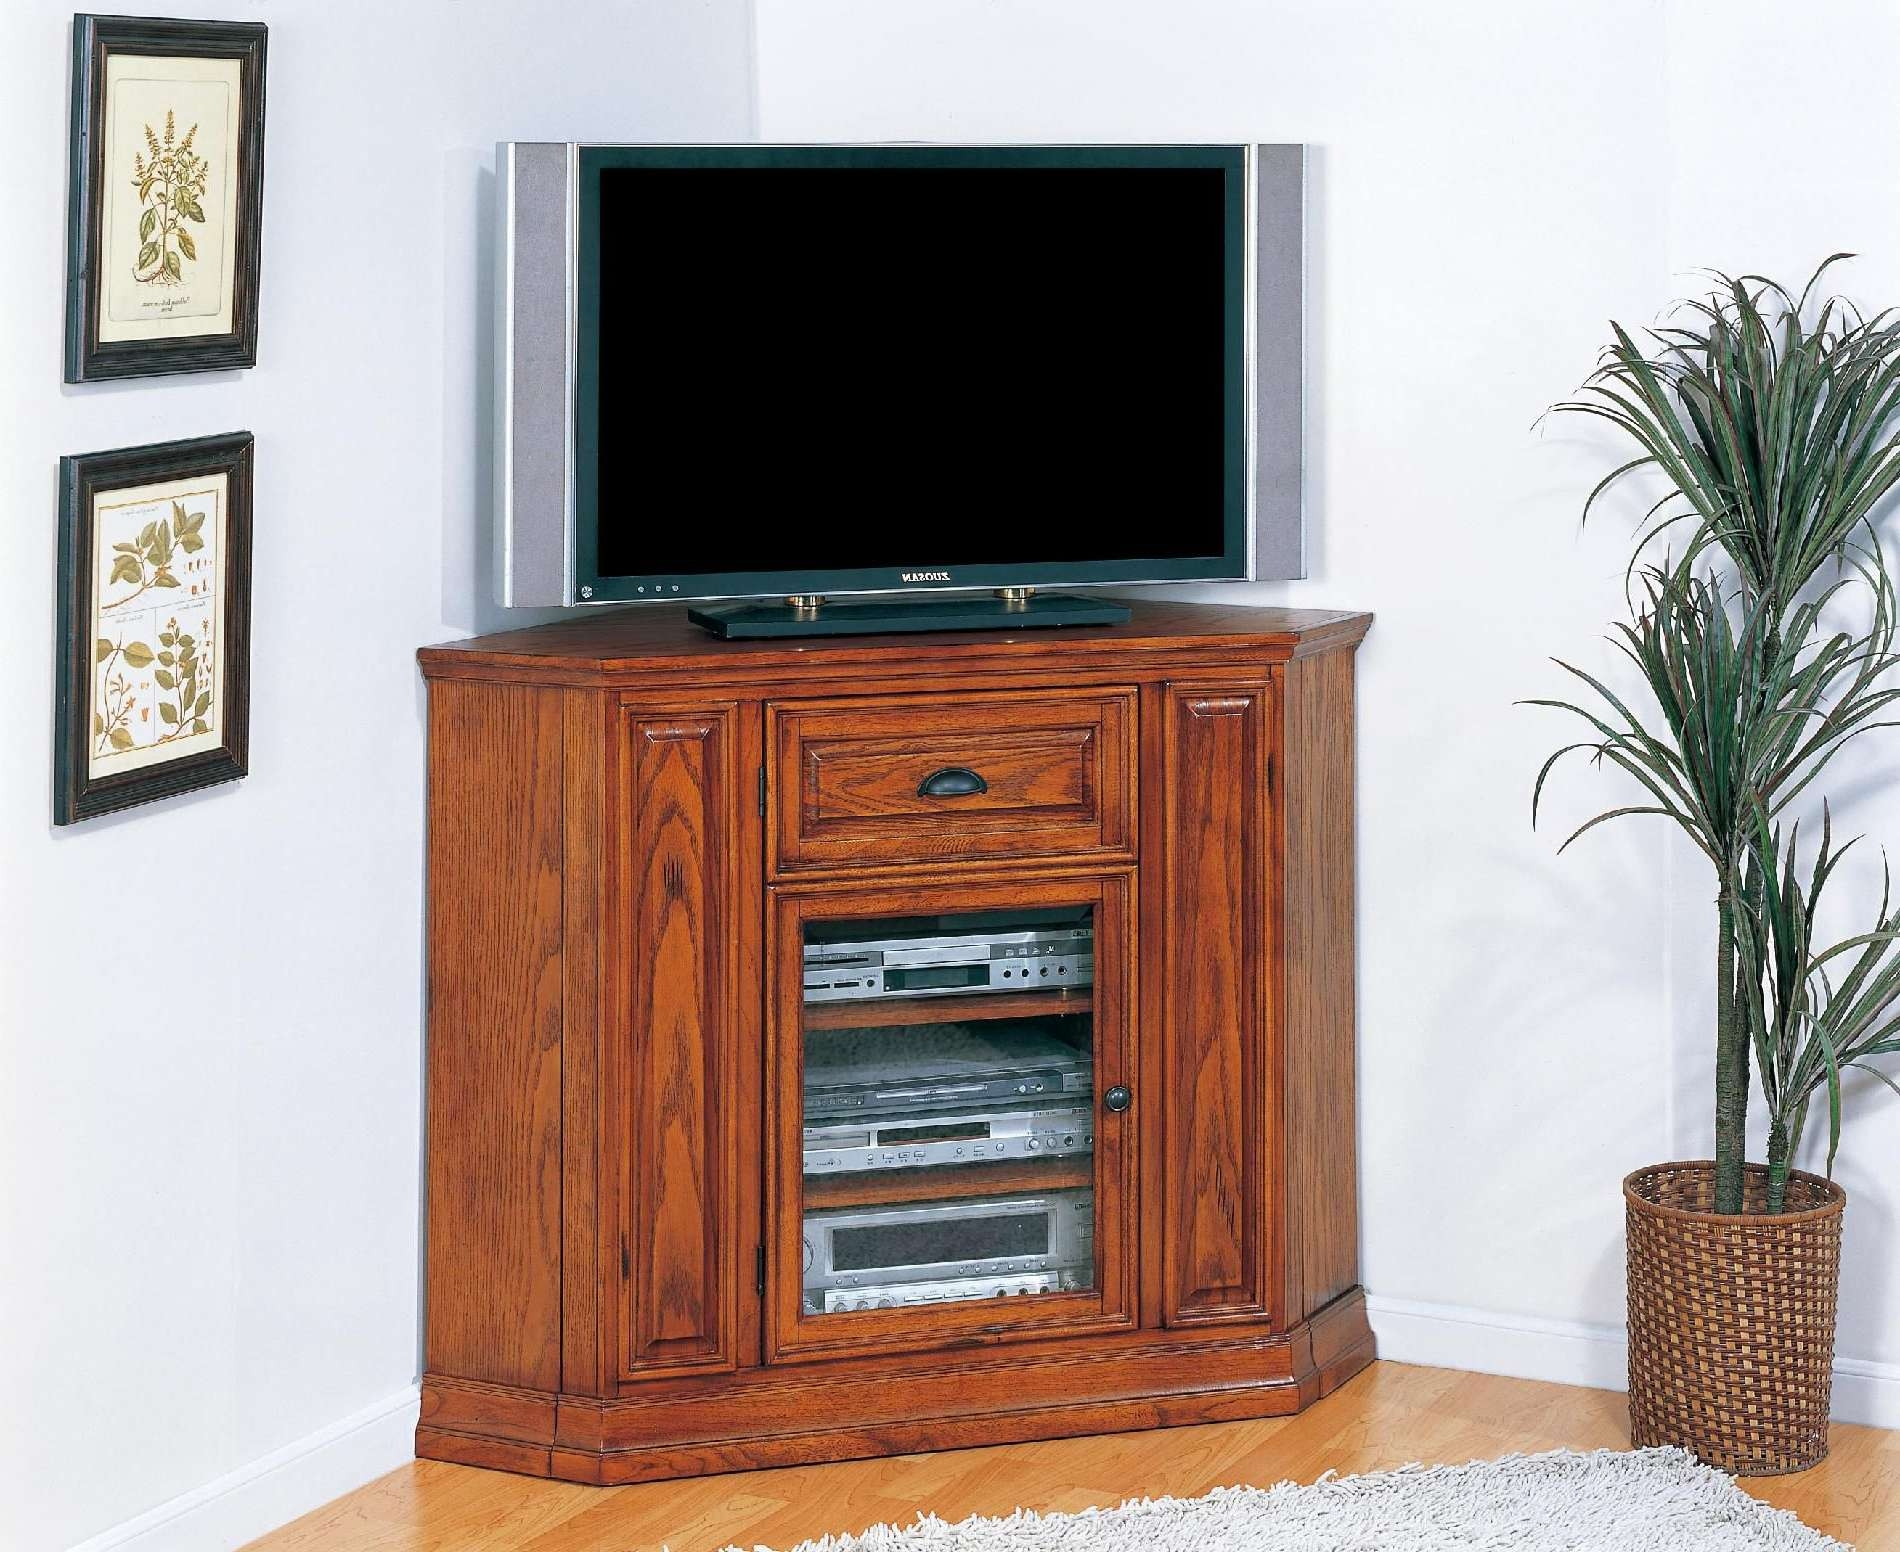 Tv Stand : Tall Narrow Tv Stands For Flat Screens And Standstall Throughout Corner Tv Stands With Drawers (View 6 of 15)